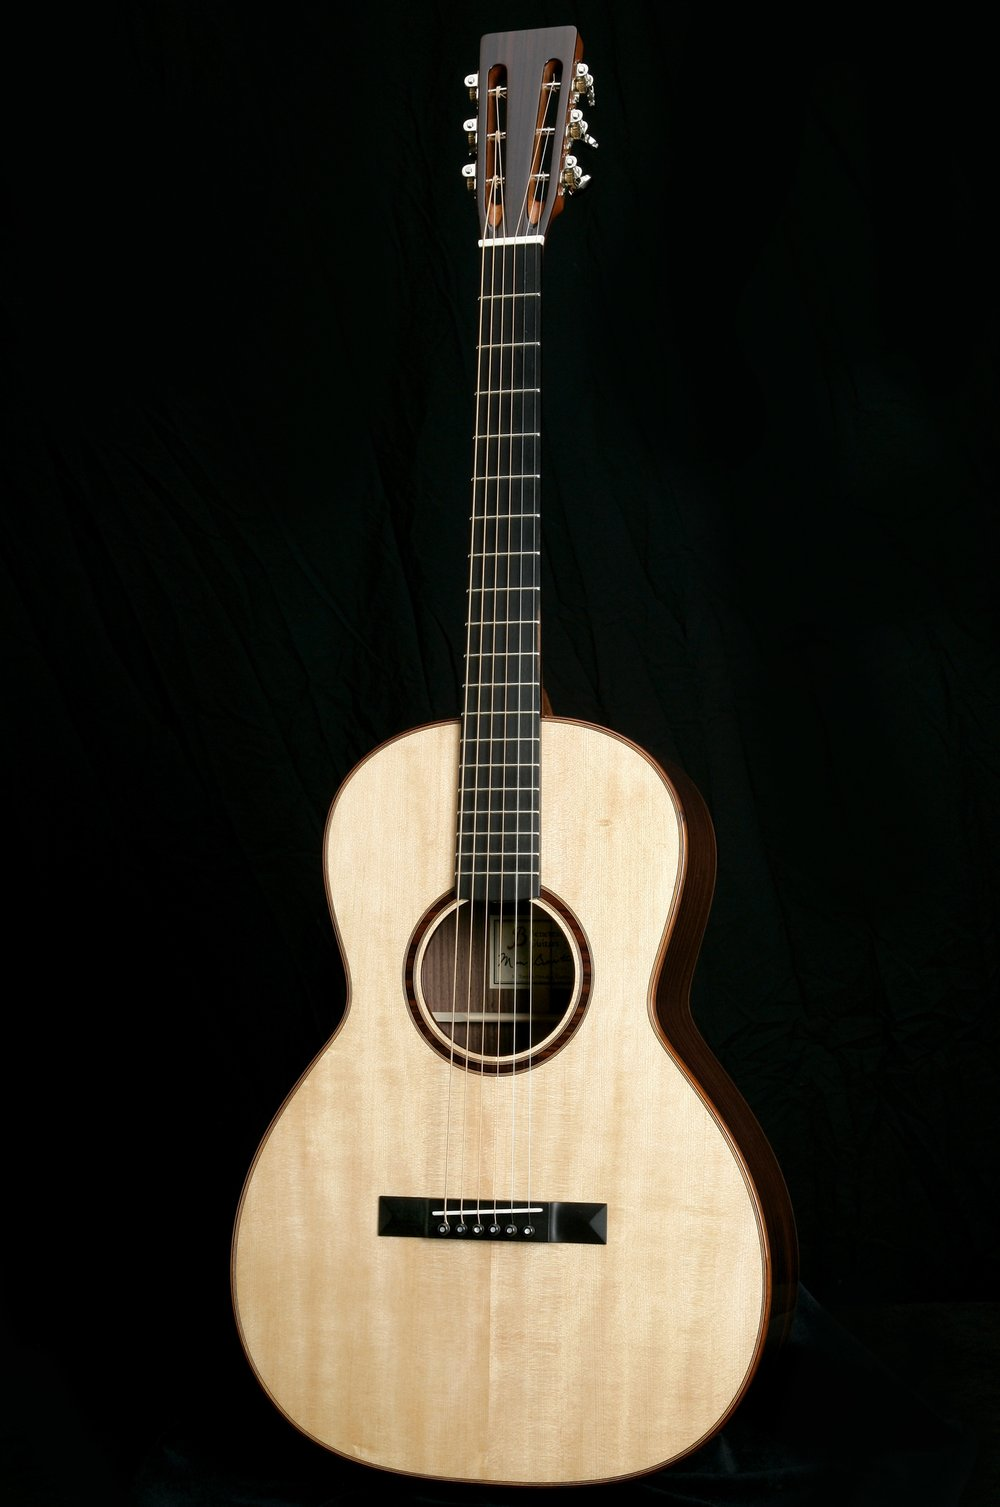 '00' 12 Fret - Dimensionally, the 00 is approximately the same dimensions as a classical guitar. The compact size makes it a very comfortable instrument to play while still providing surprising tone and volume. DimensionsUpper Bout: 9 7/8